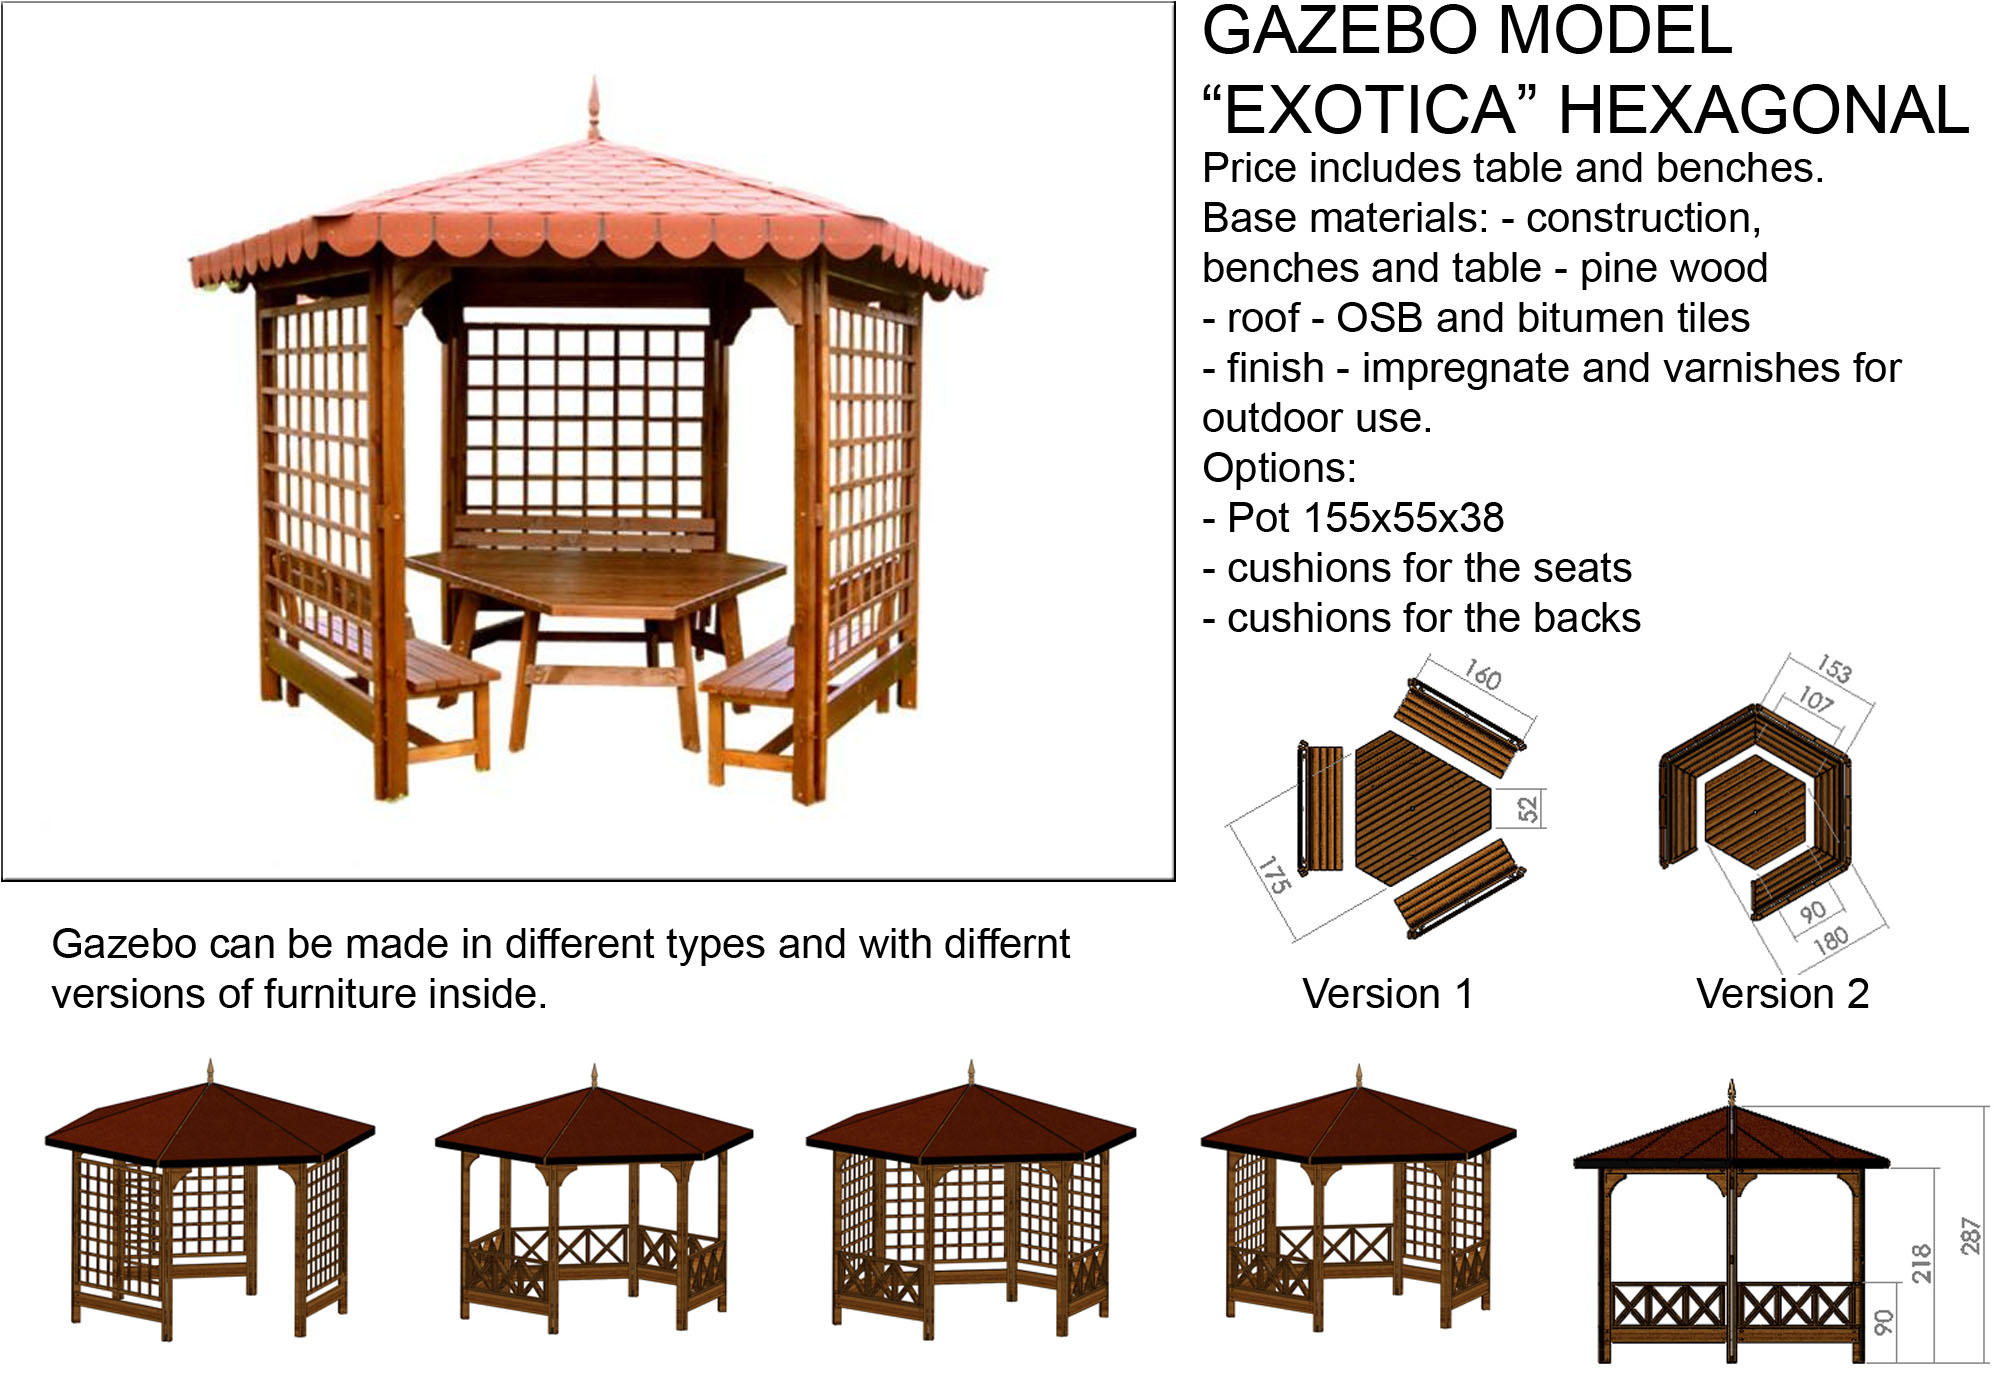 Gazebo Exotica Hexagonal